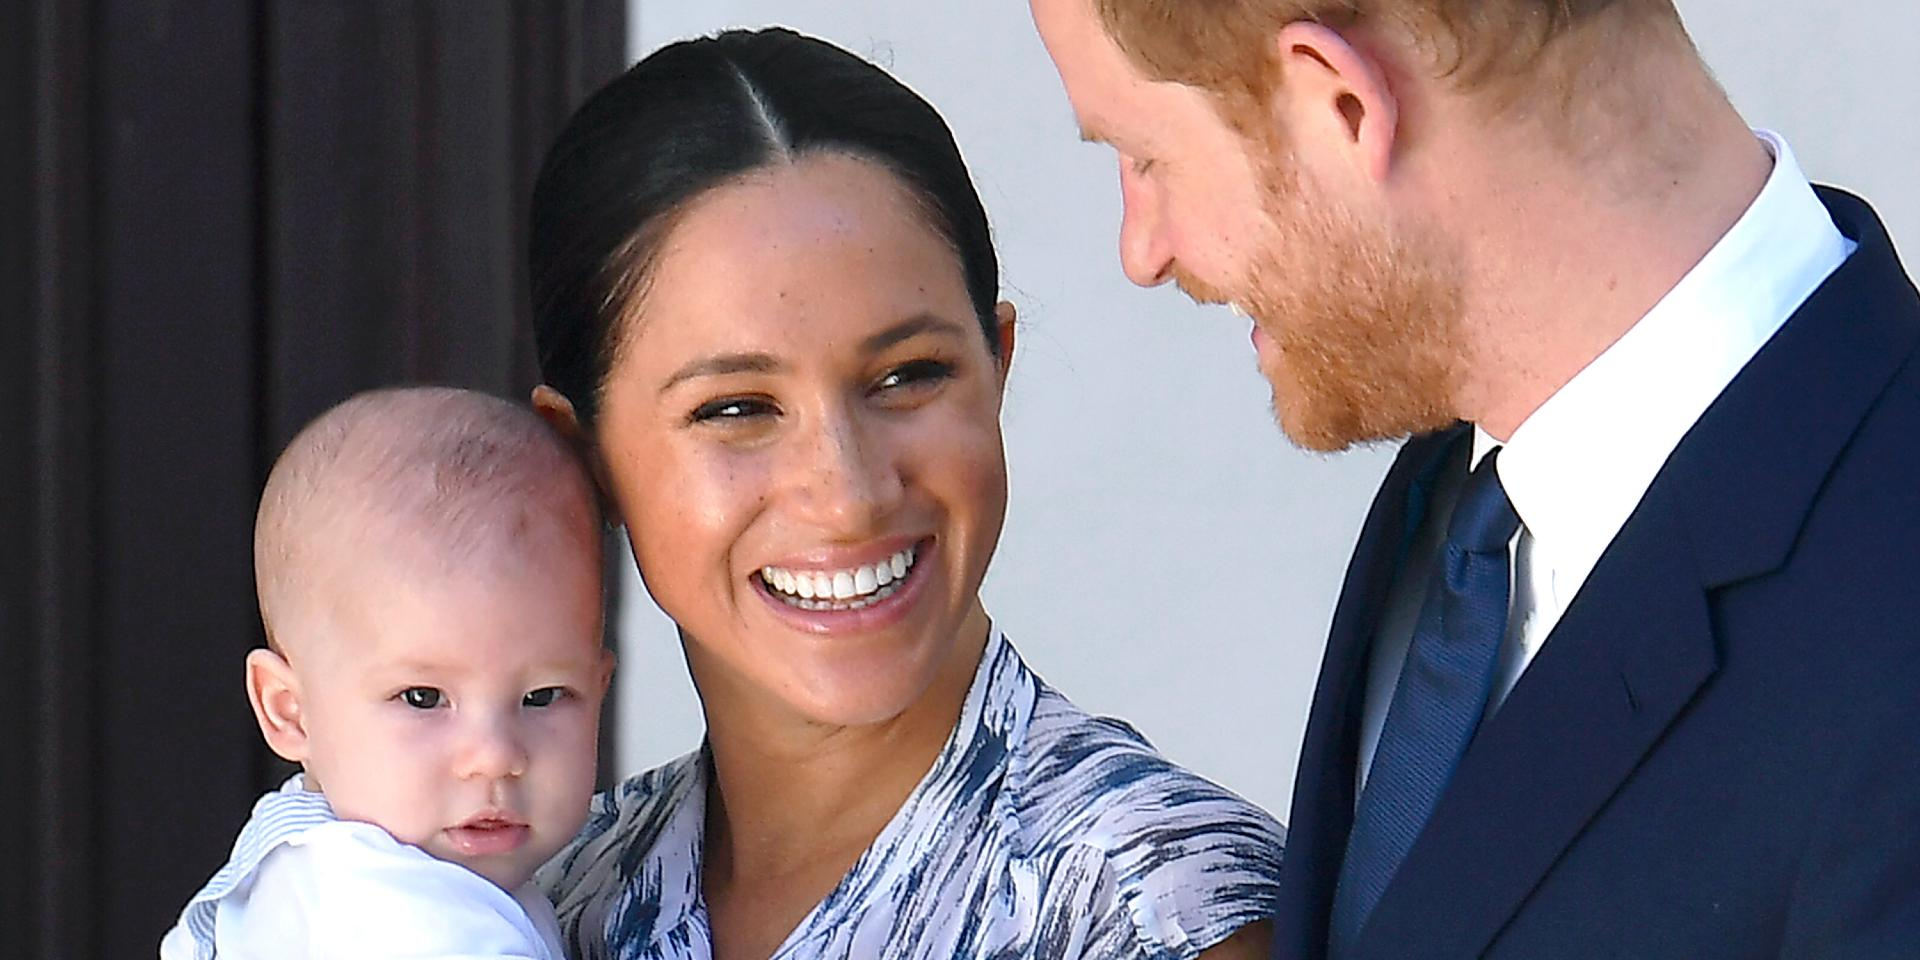 Meghan Markle & Prince Harry's Big News: Baby No. 2 Is On The Way — See The Stunning Photo